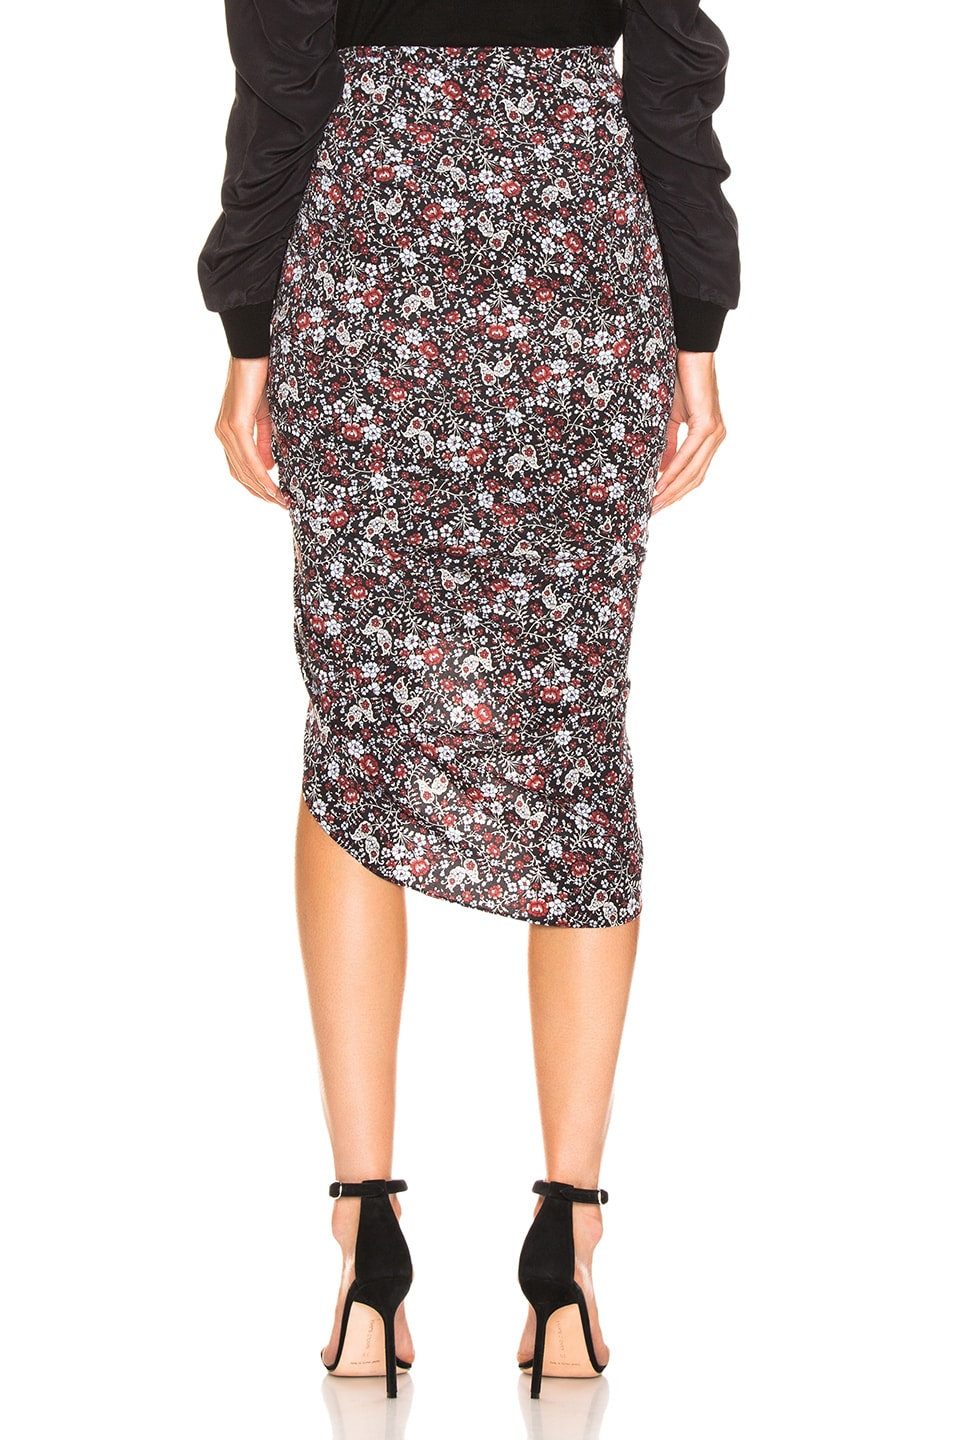 Image 4 of Veronica Beard Ari Skirt in Black Multi